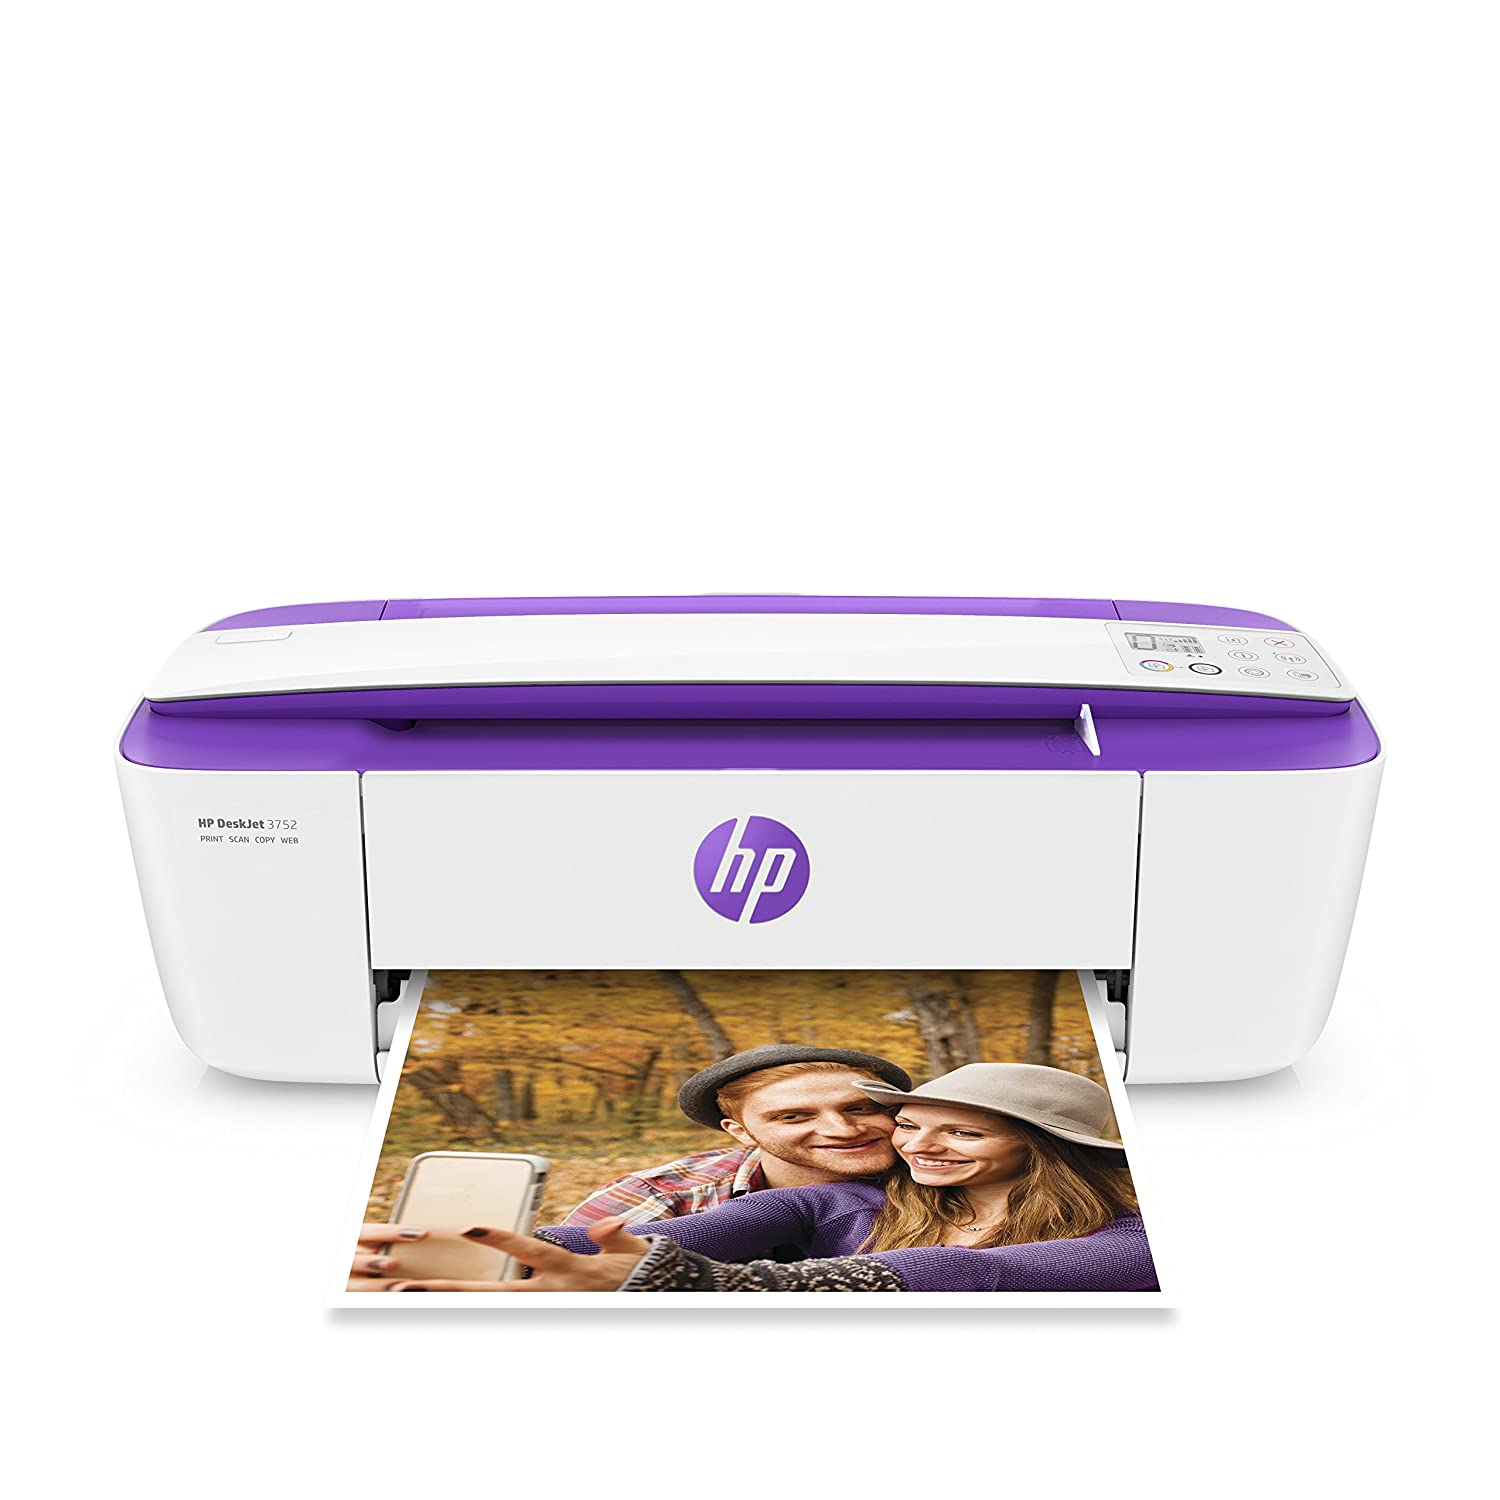 Amazon HP DeskJet 3752 Wireless All In One Compact Printer With Mobile Printing Instant Ink Dash Replenishment Ready